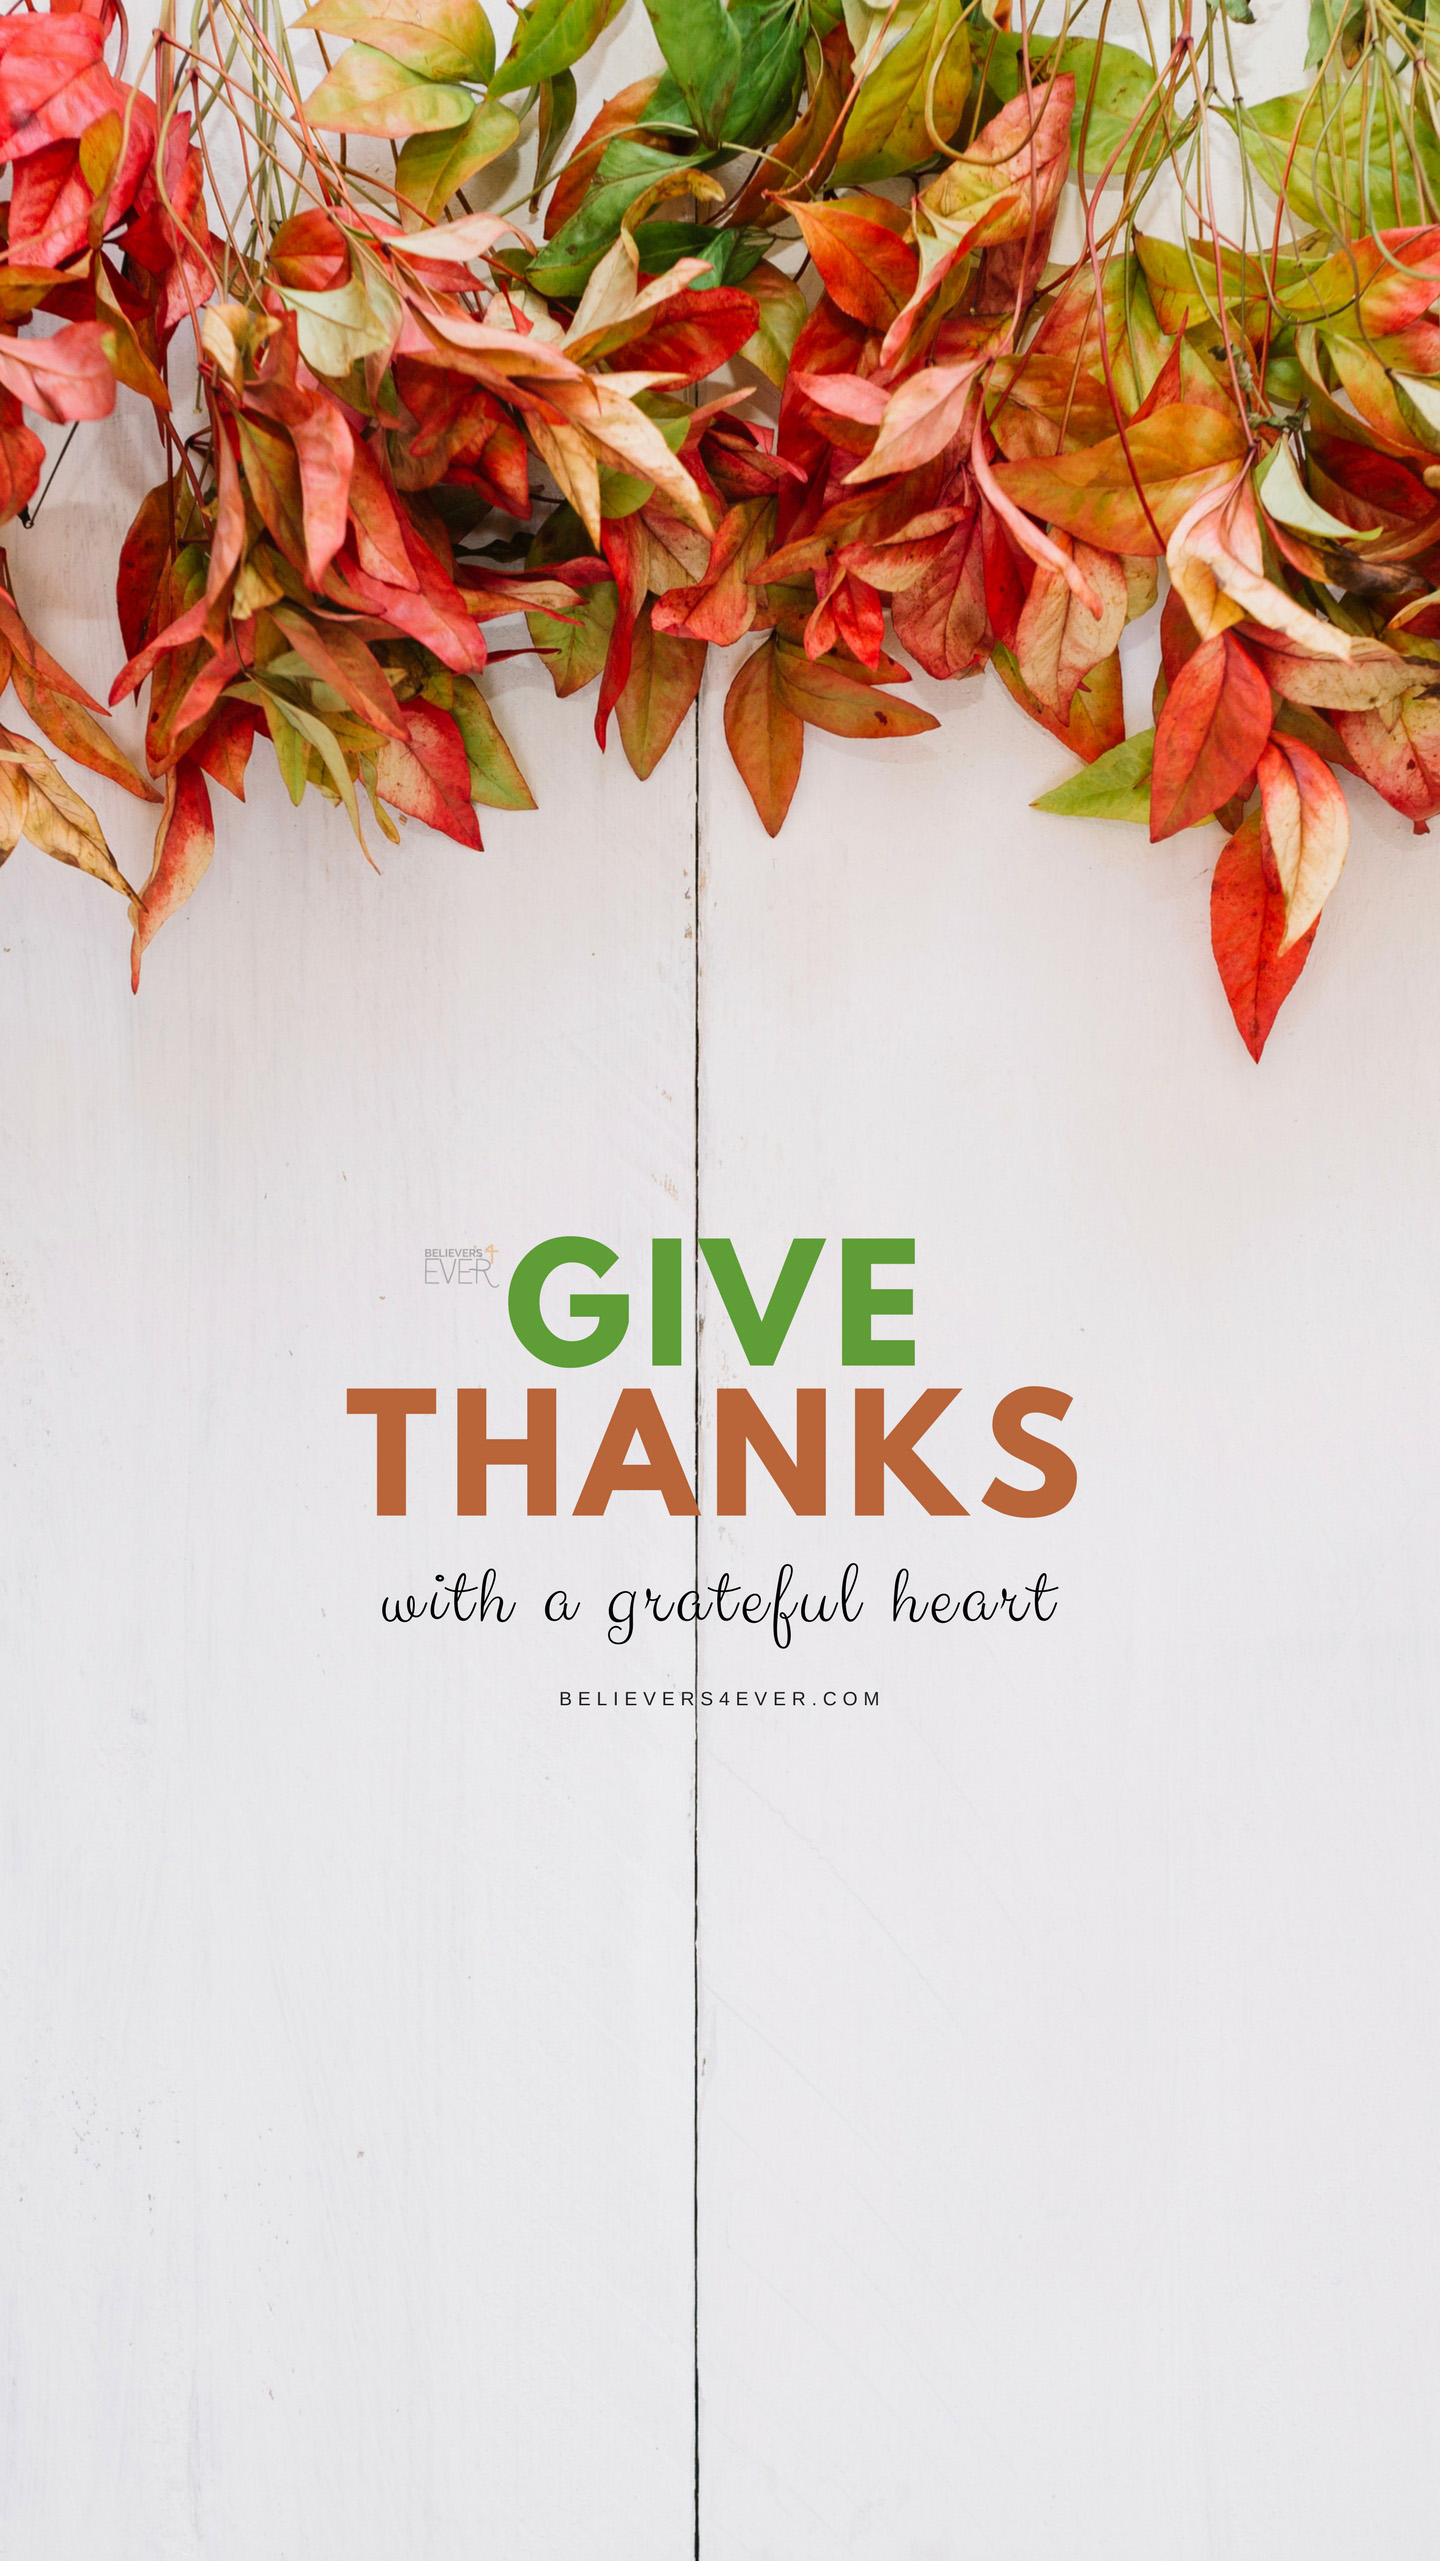 Give thanks Mobile thanksgiving wallpaper